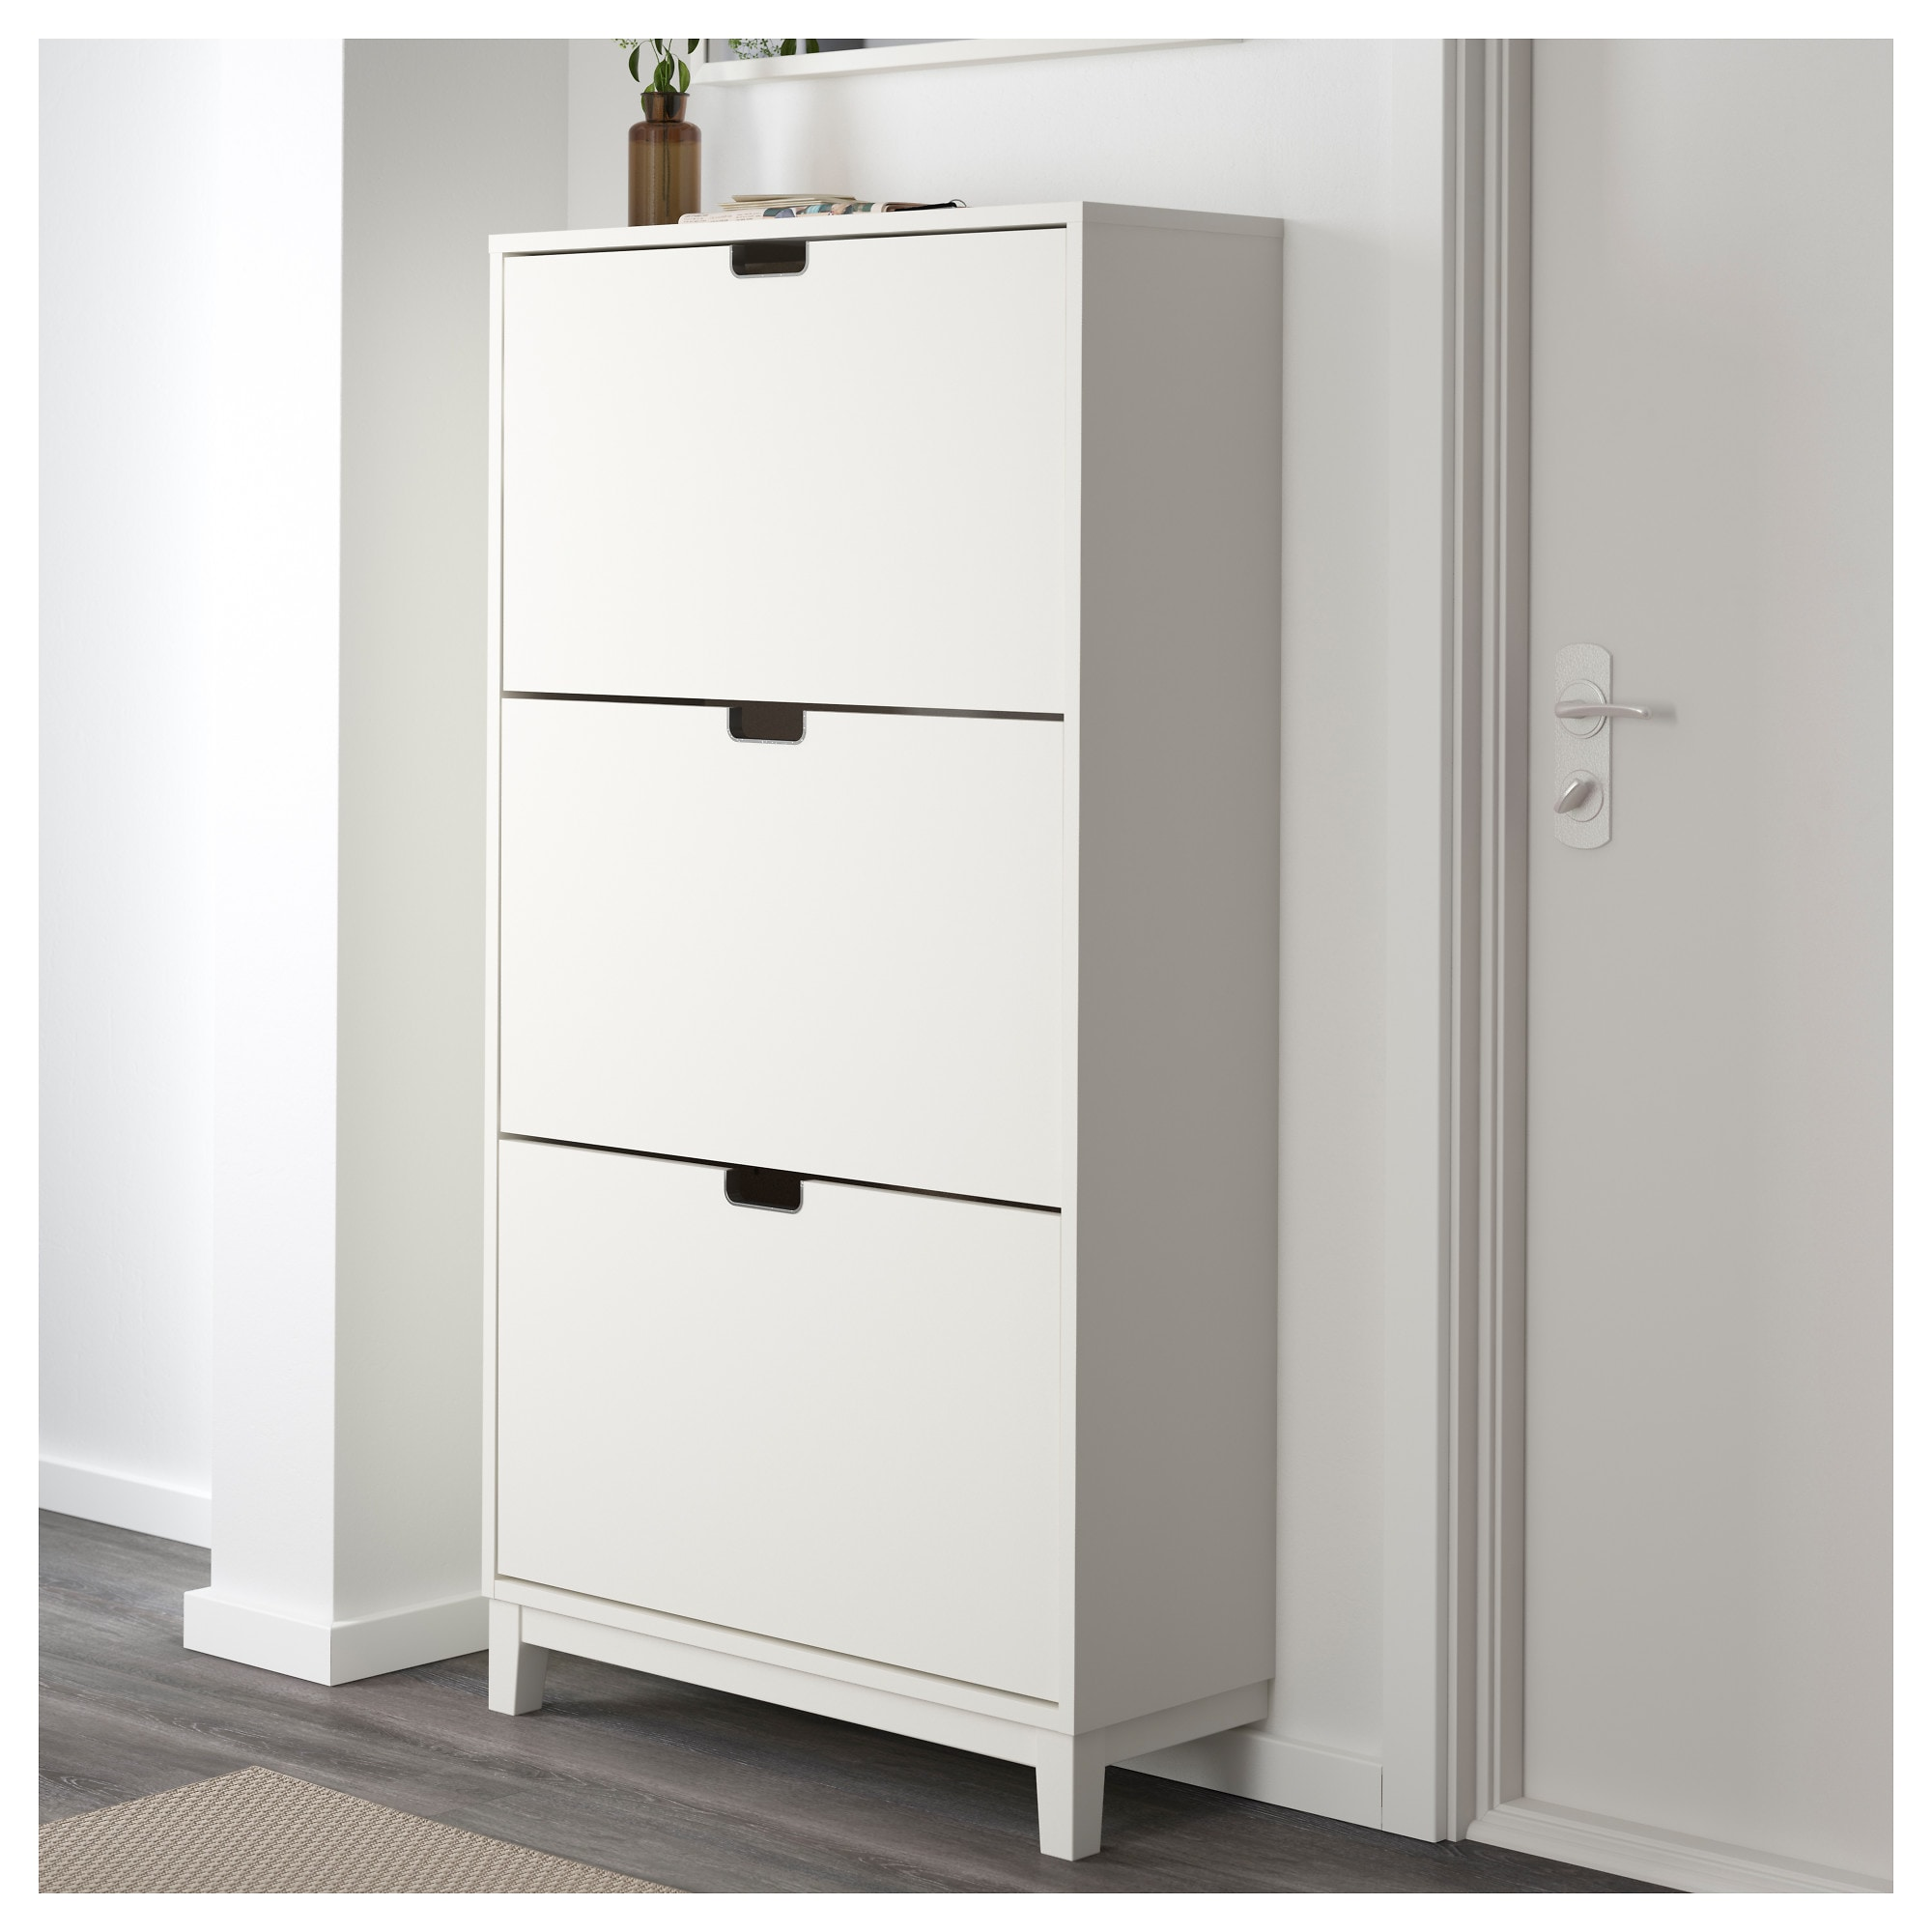 Design Ikea Shoe Storage shoe cabinet with 3 compartments white ikea